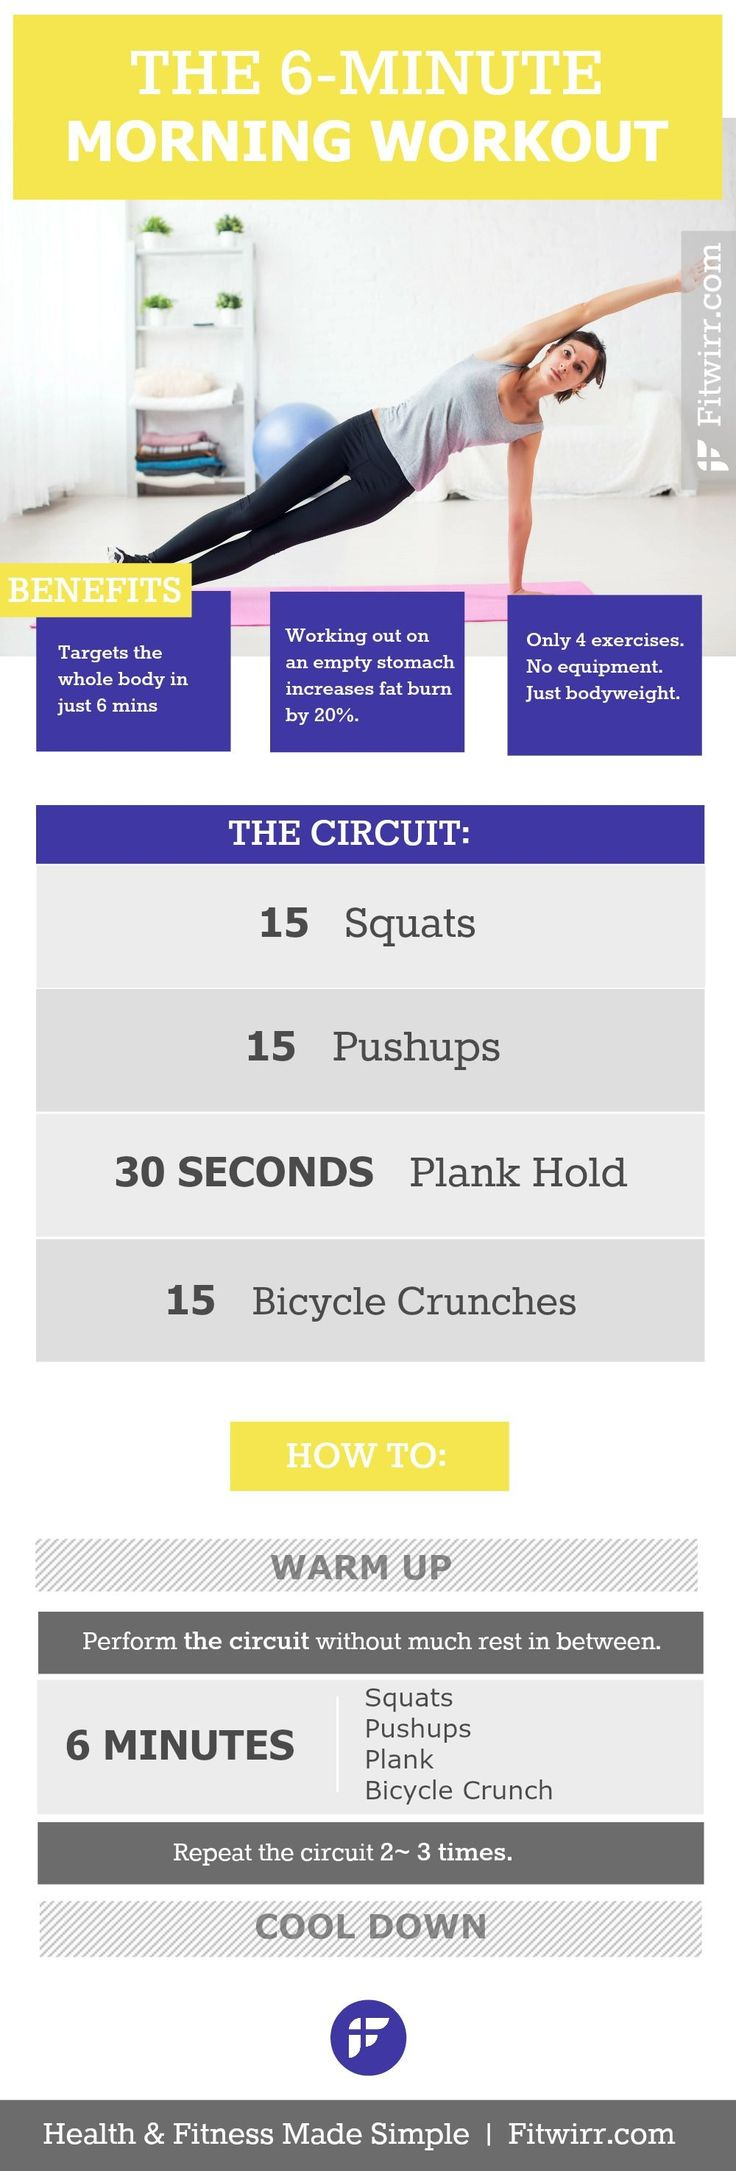 The quickest morning workout routine